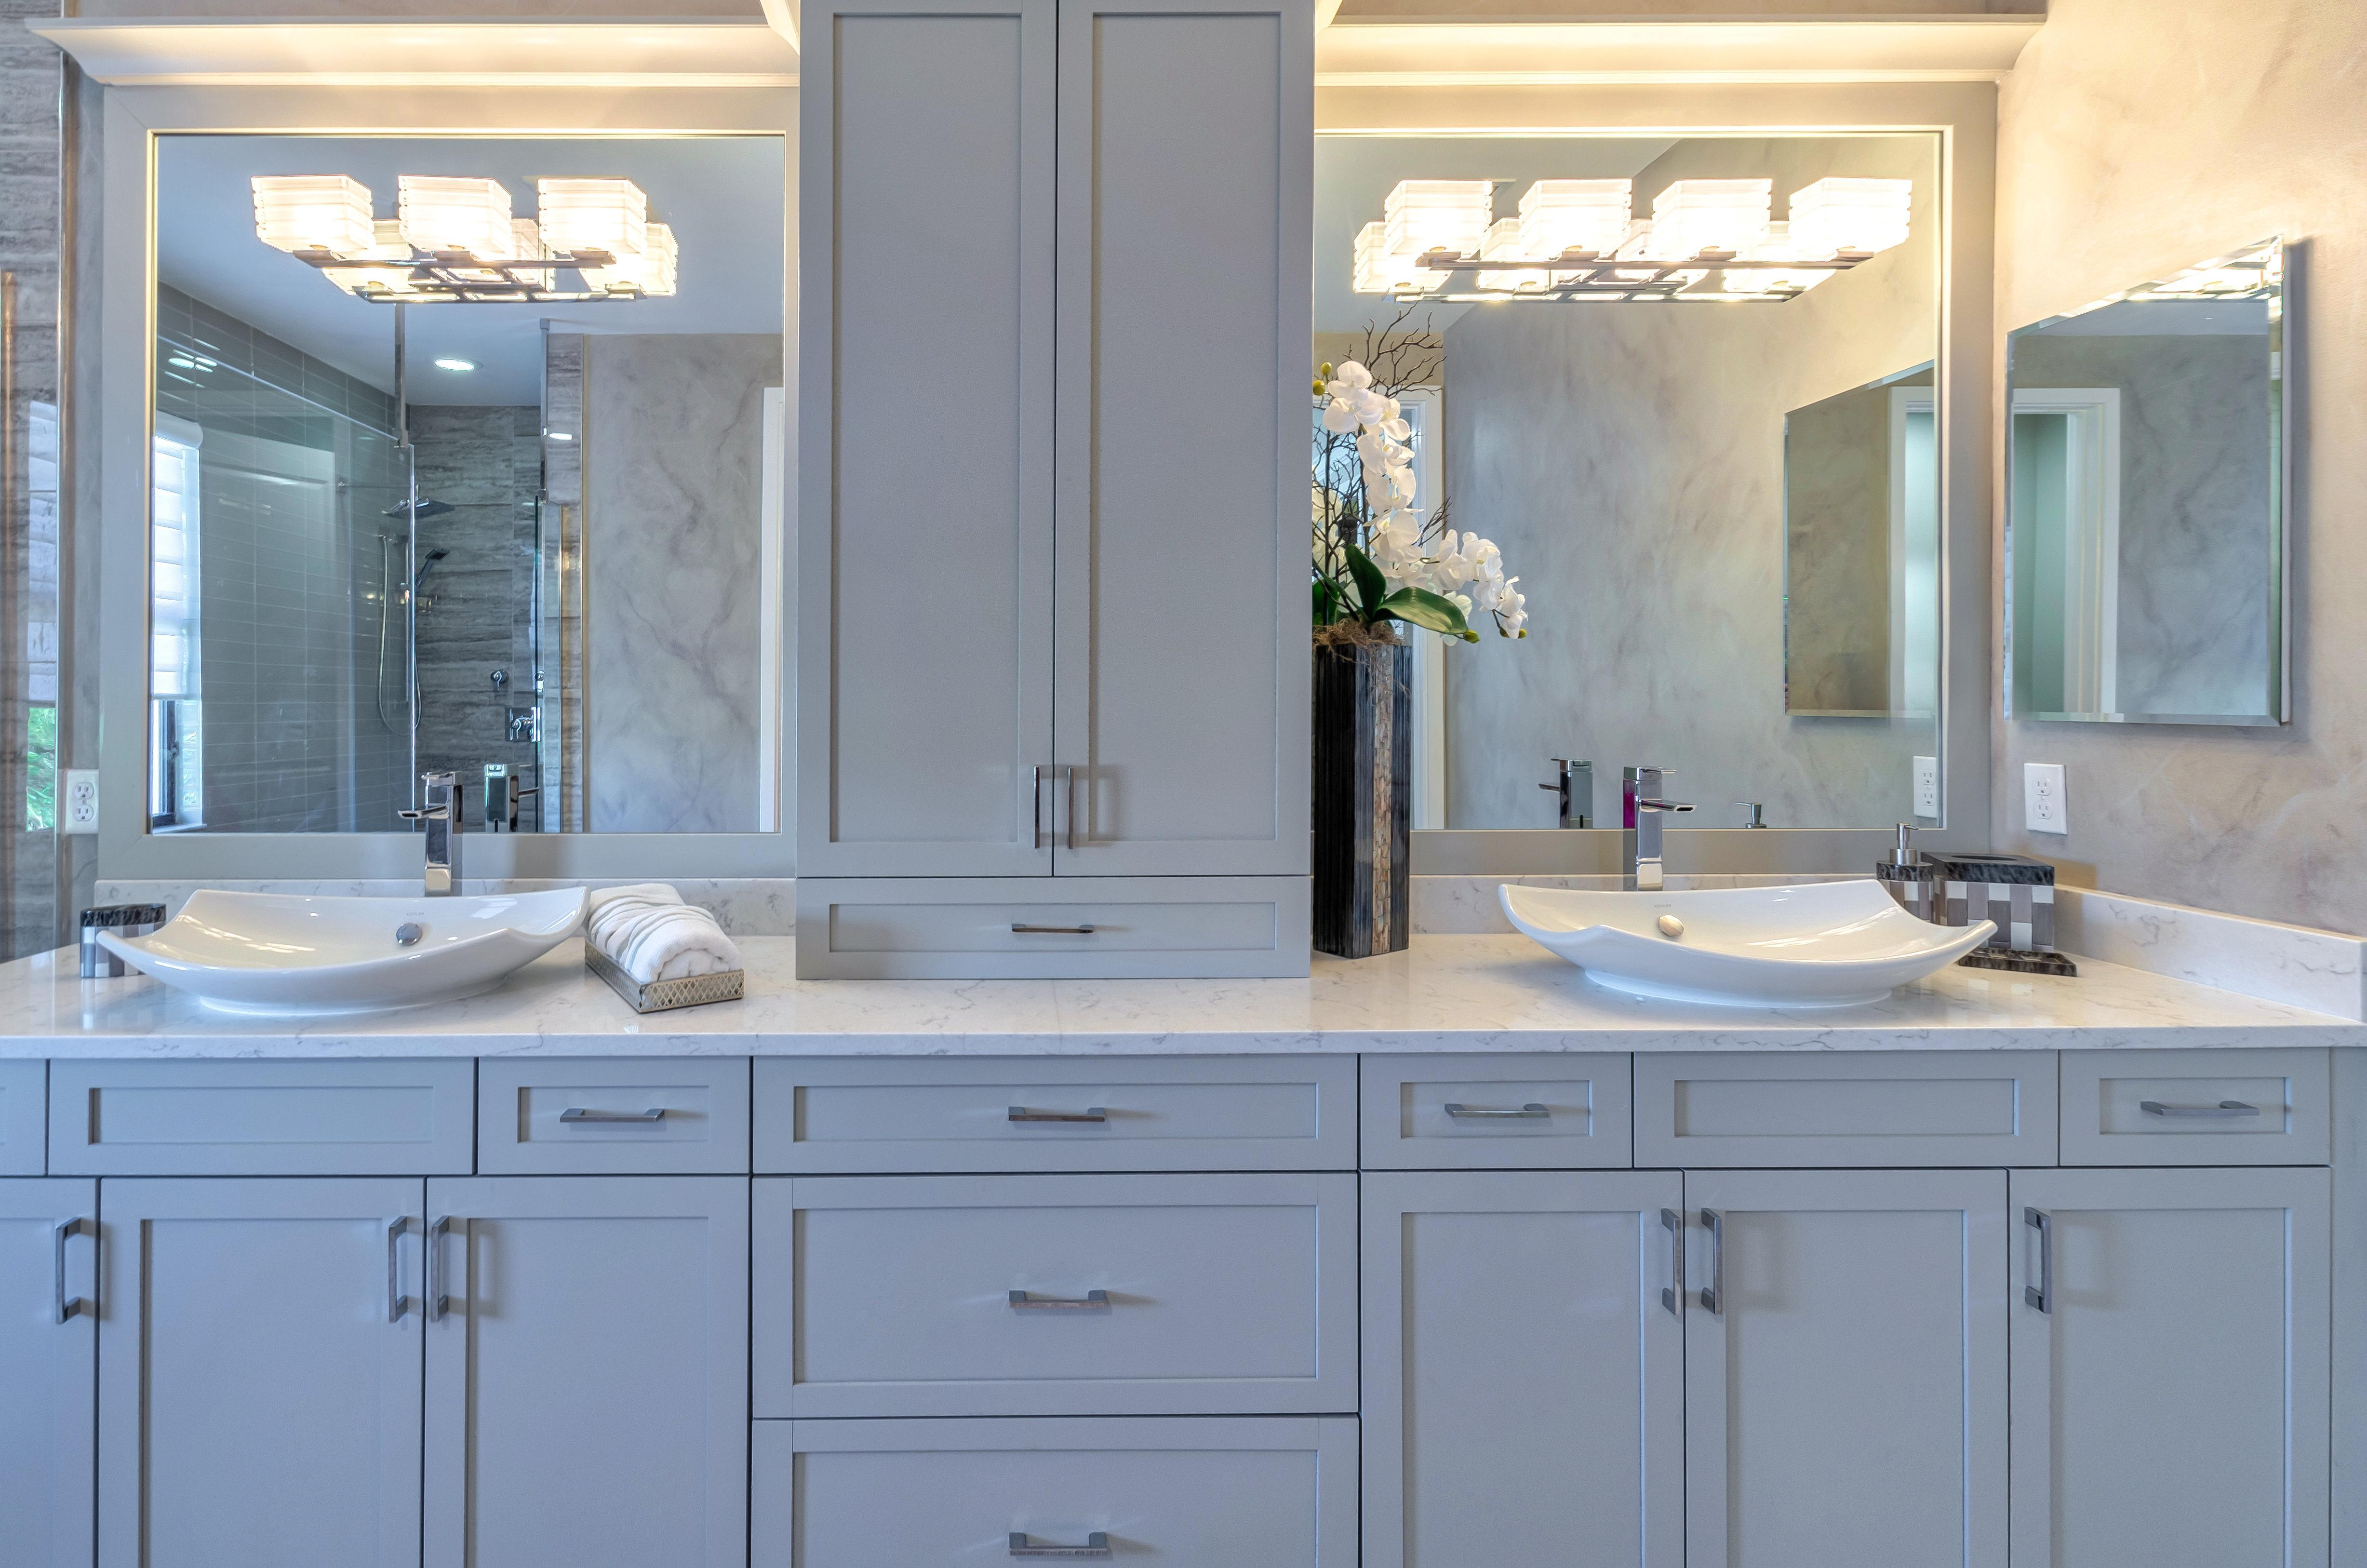 Bathroom featured in the Mesa By Akel Homes in Palm Beach County, FL